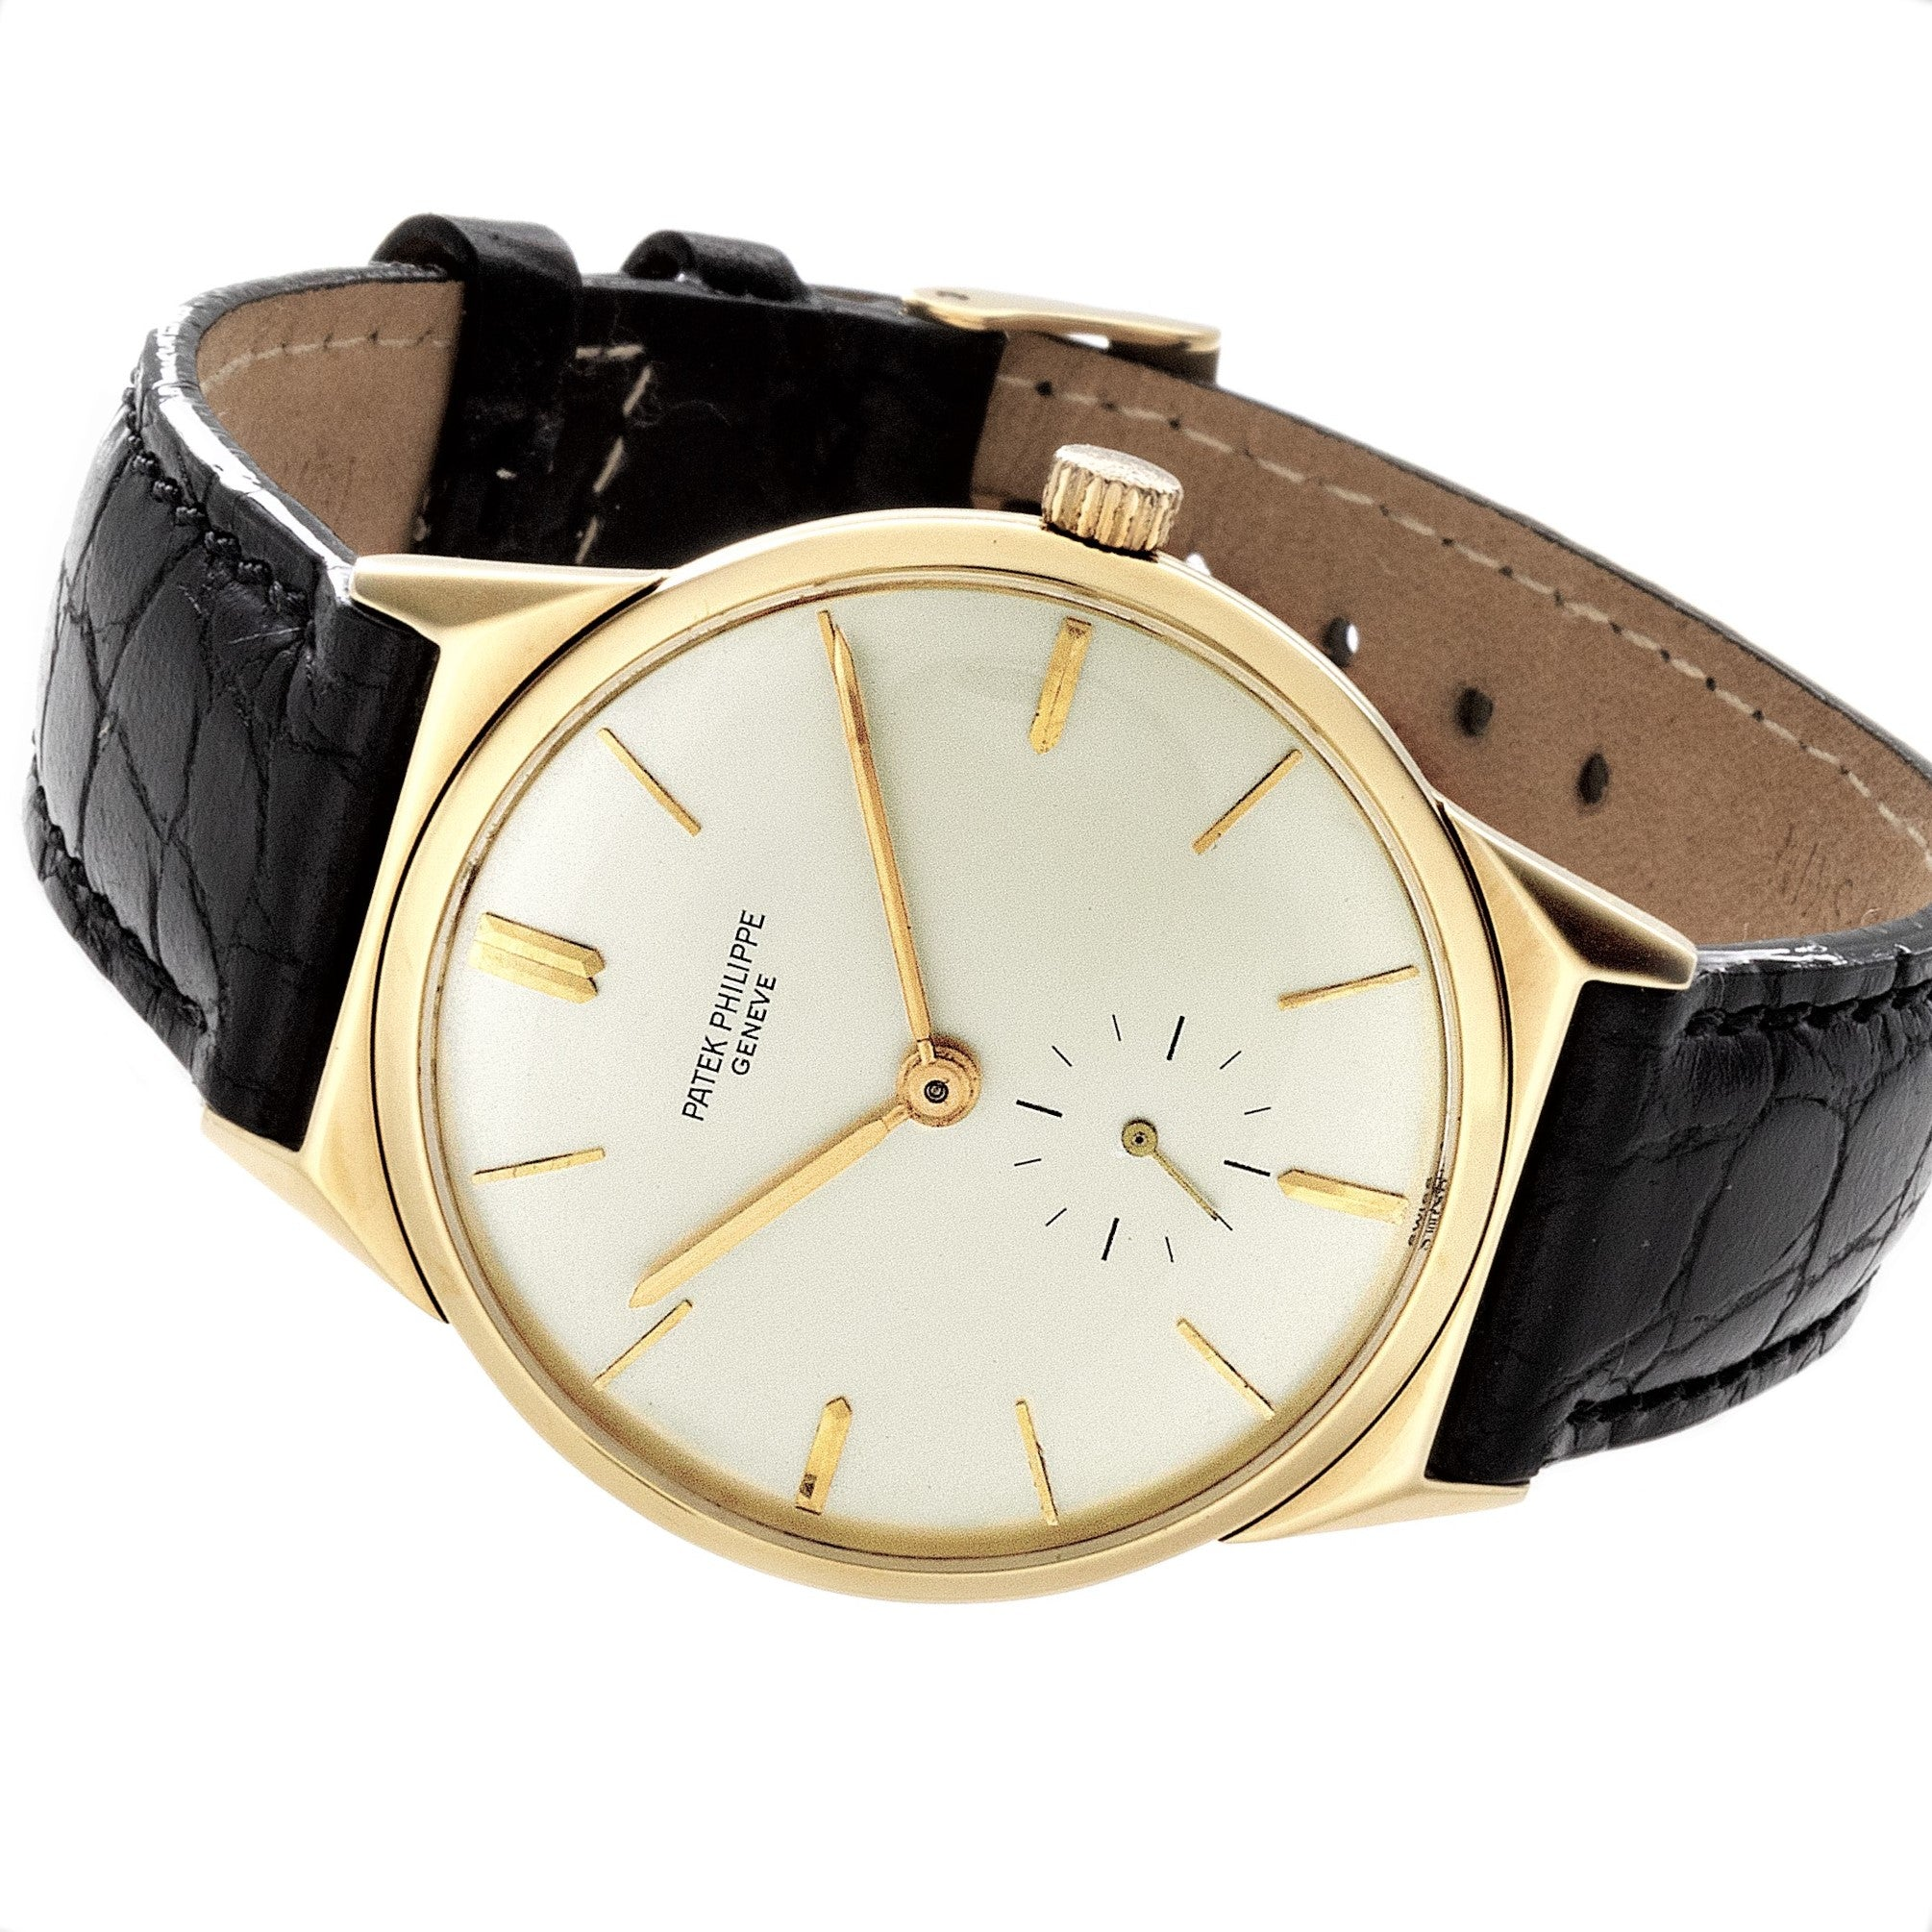 Patek Philippe 2568J Calatrava Watch